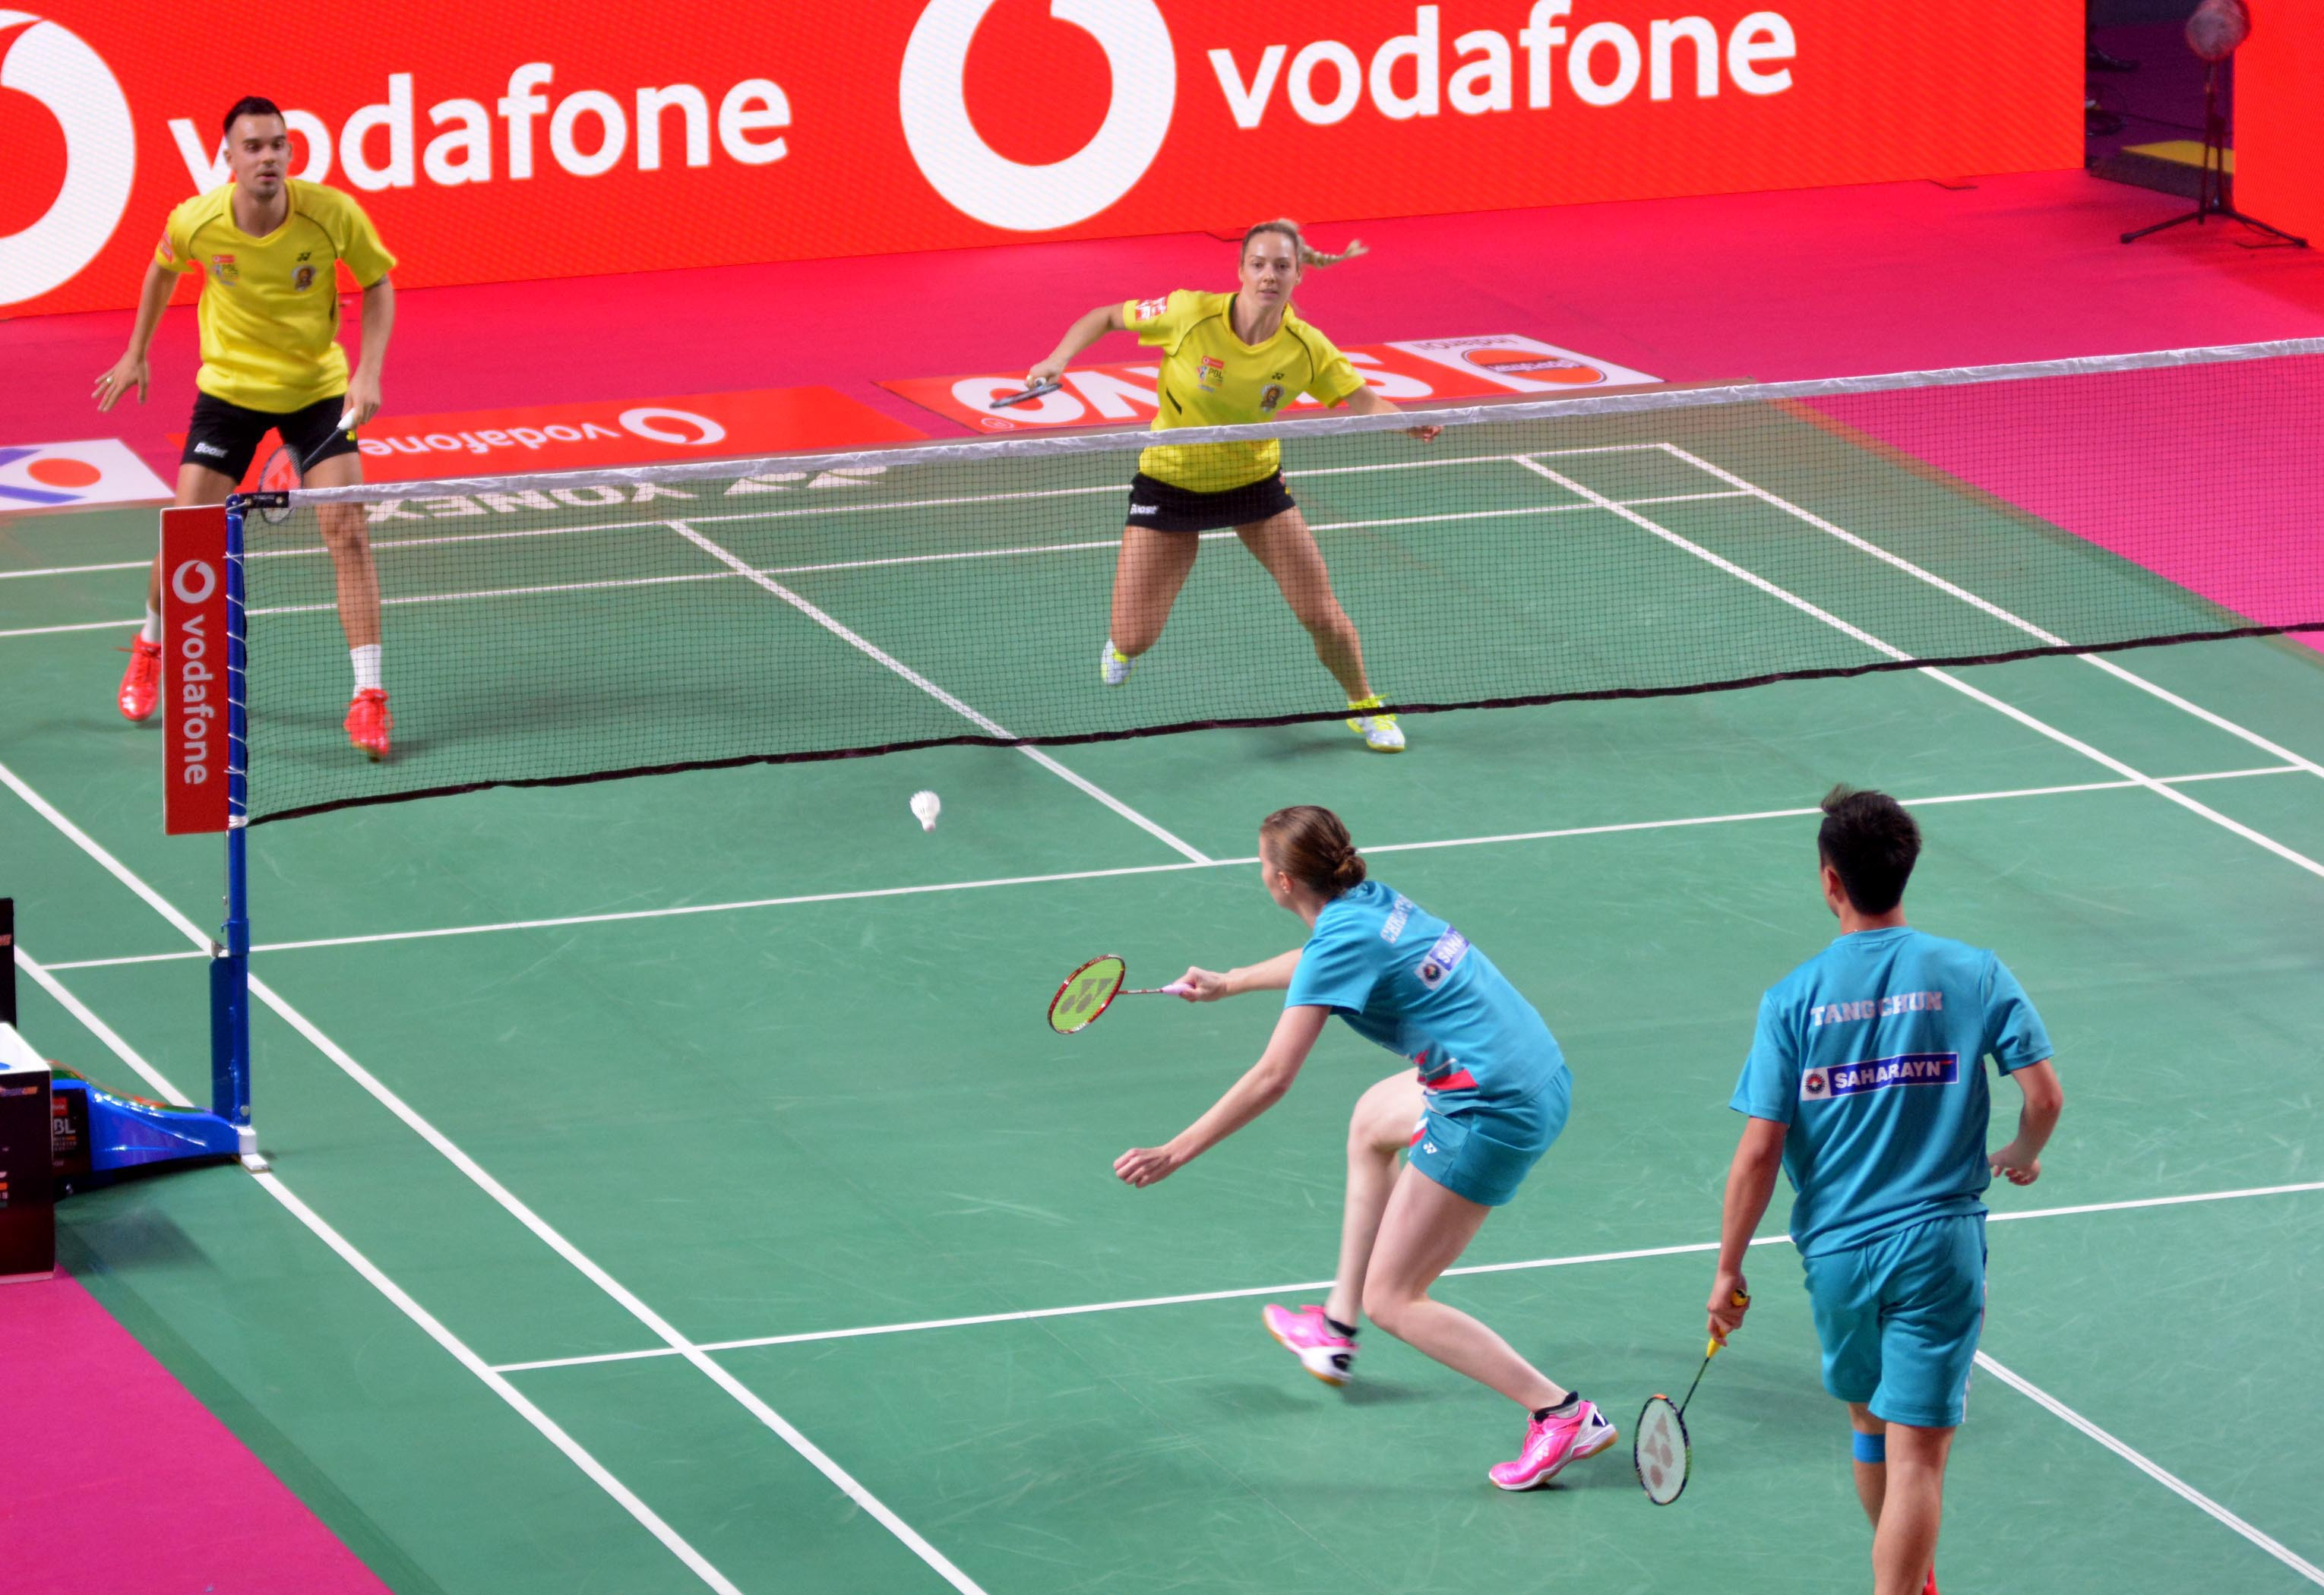 Chennai Smashers pair  Chris Adcock and Gabrielle Adcock played against  Awadhe Warriors pair Christina Pedersen and Tang Chung Man during their mixed doubles tie on  3rd session Vodafone Premier Badminton League match in Guwahati on Saturday, UB Photos